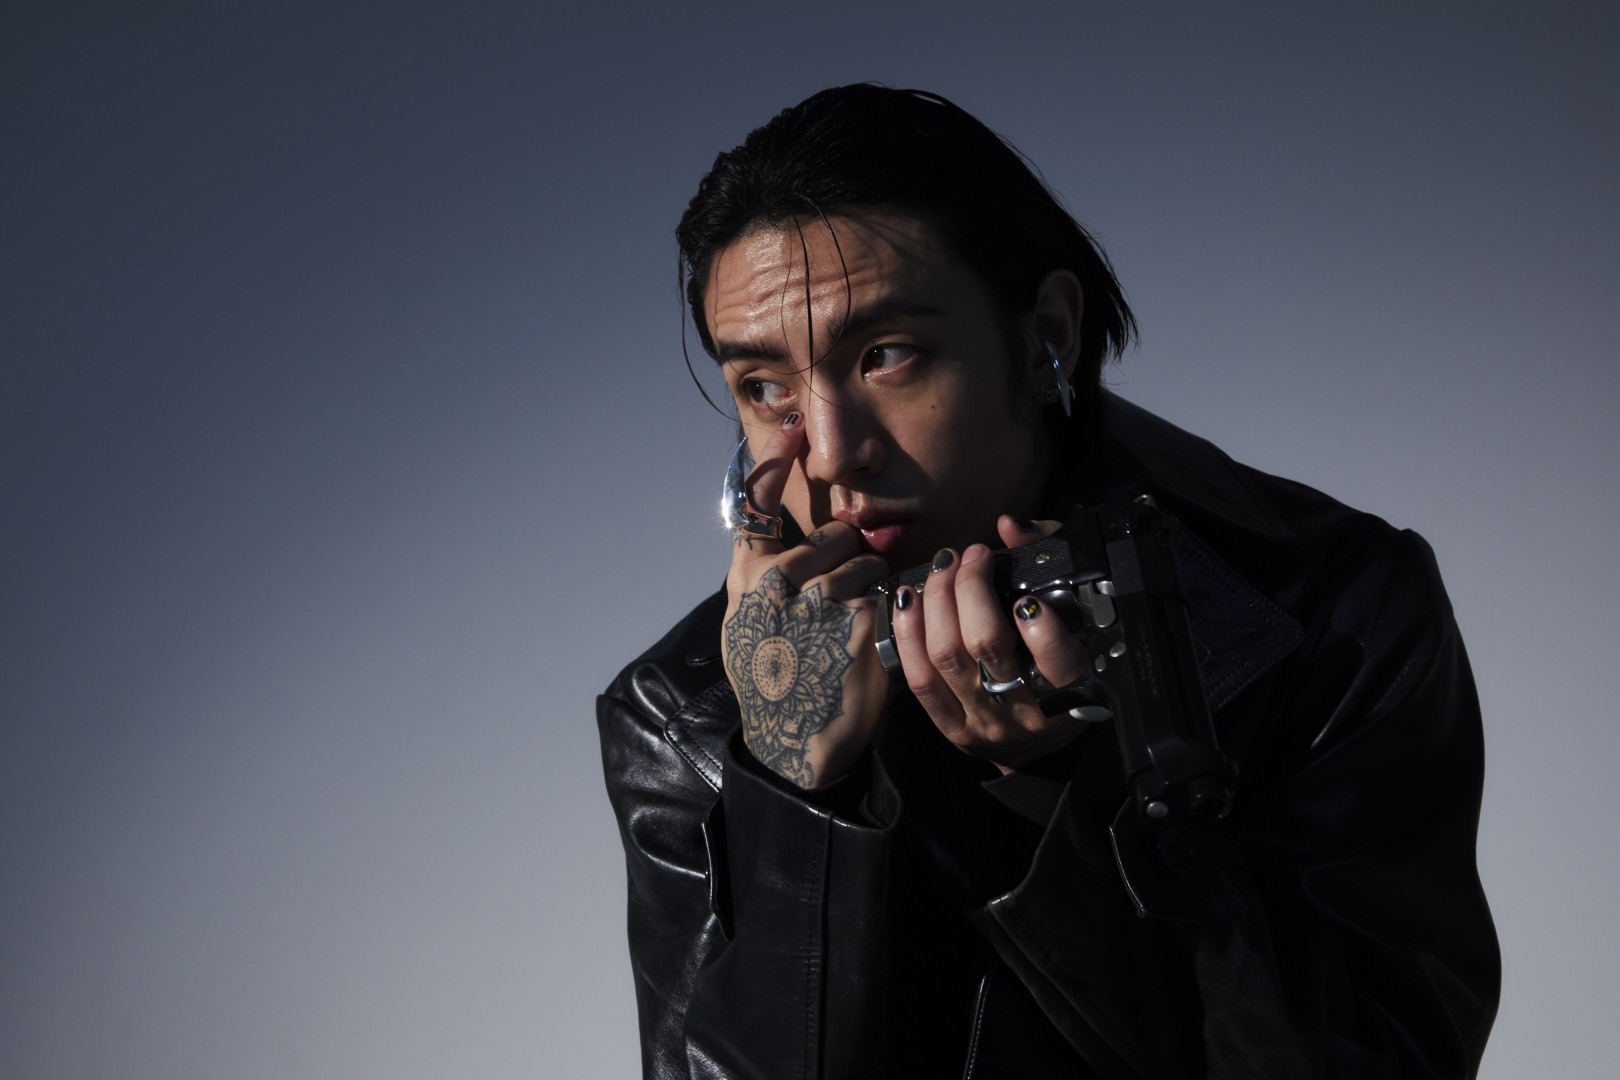 Singer DPR Ian on his first solo album, 'Moodswings In This Order ...